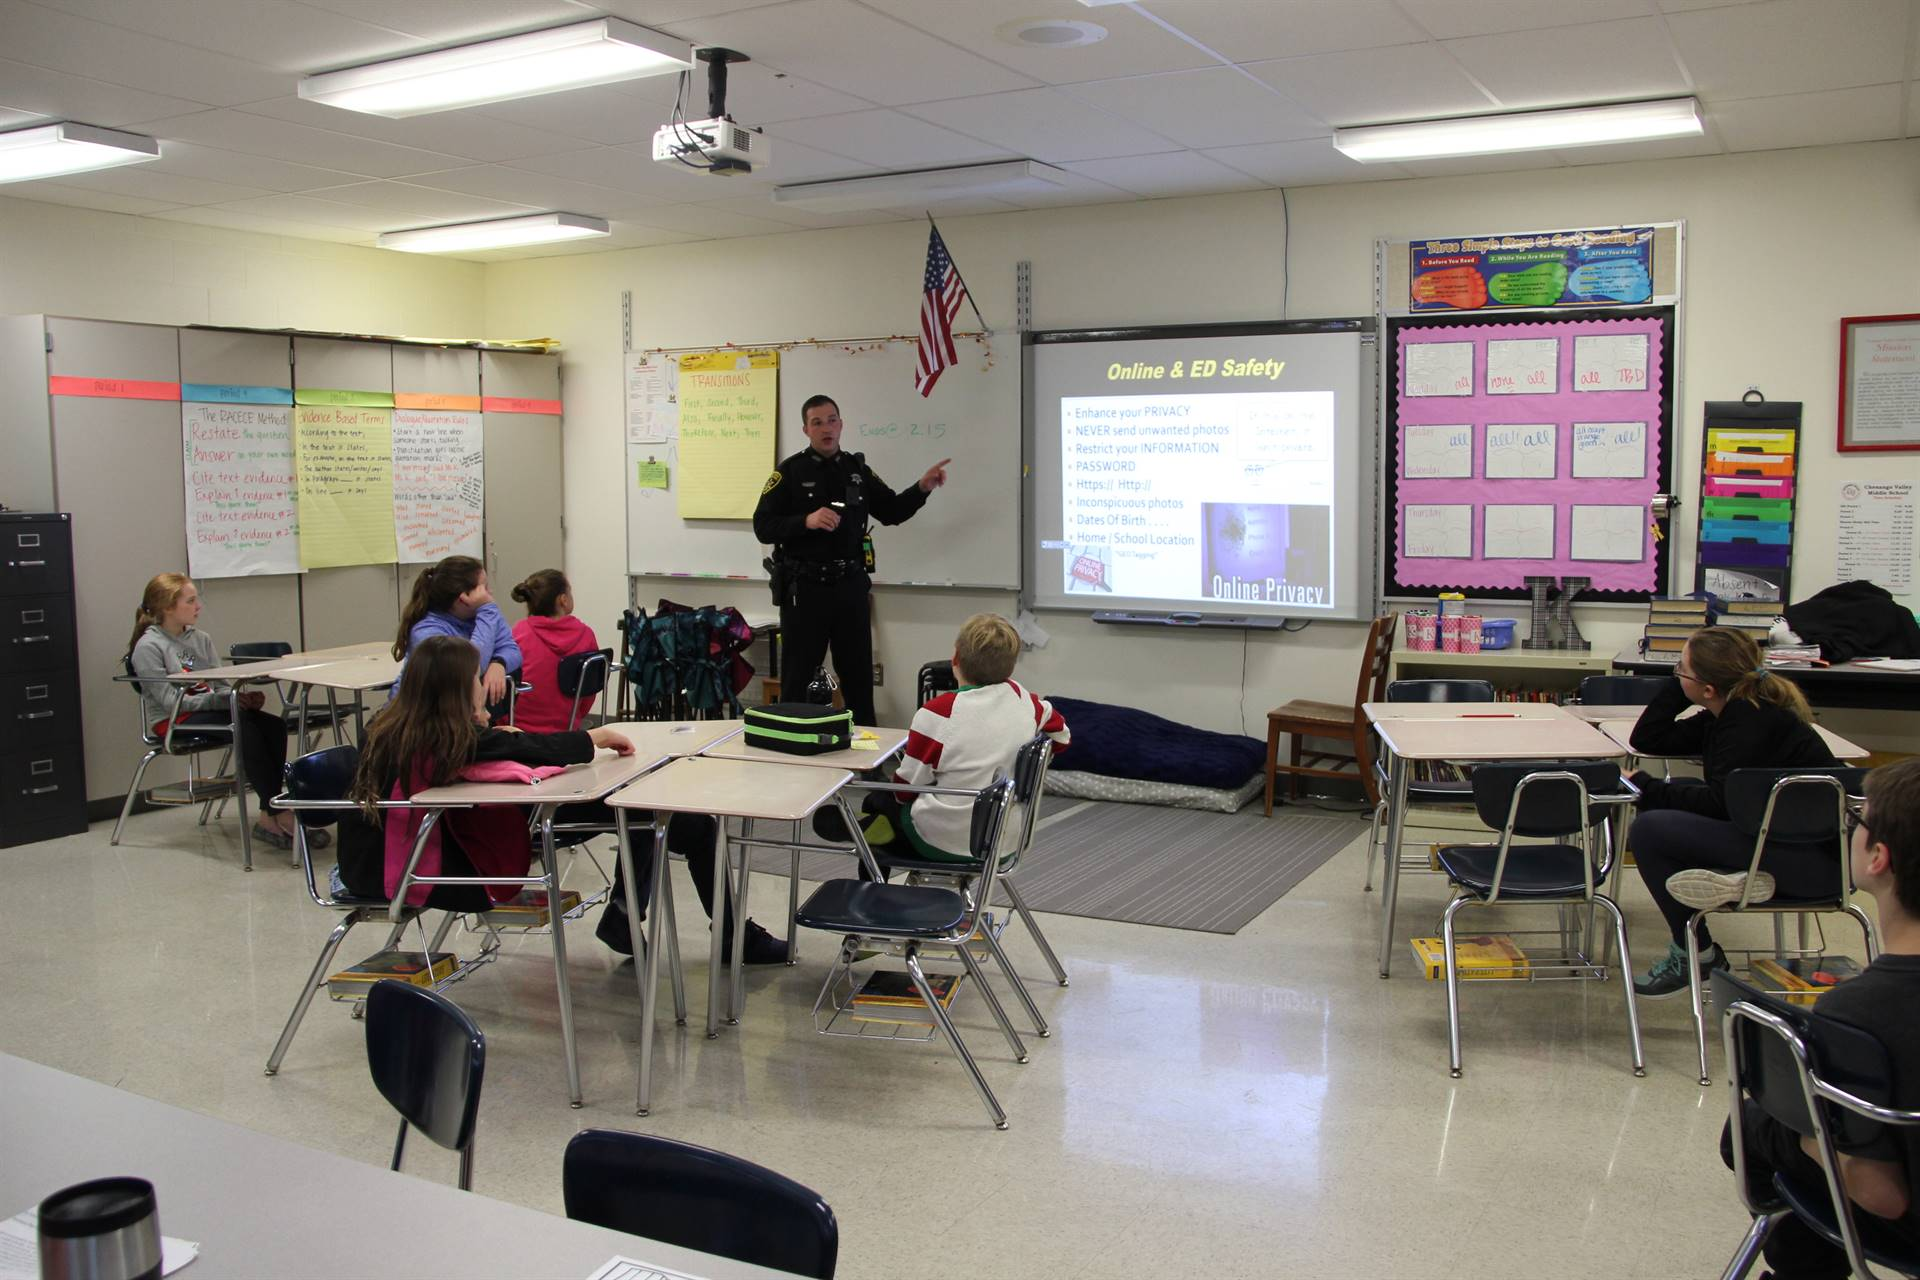 students learn about cyber bullying